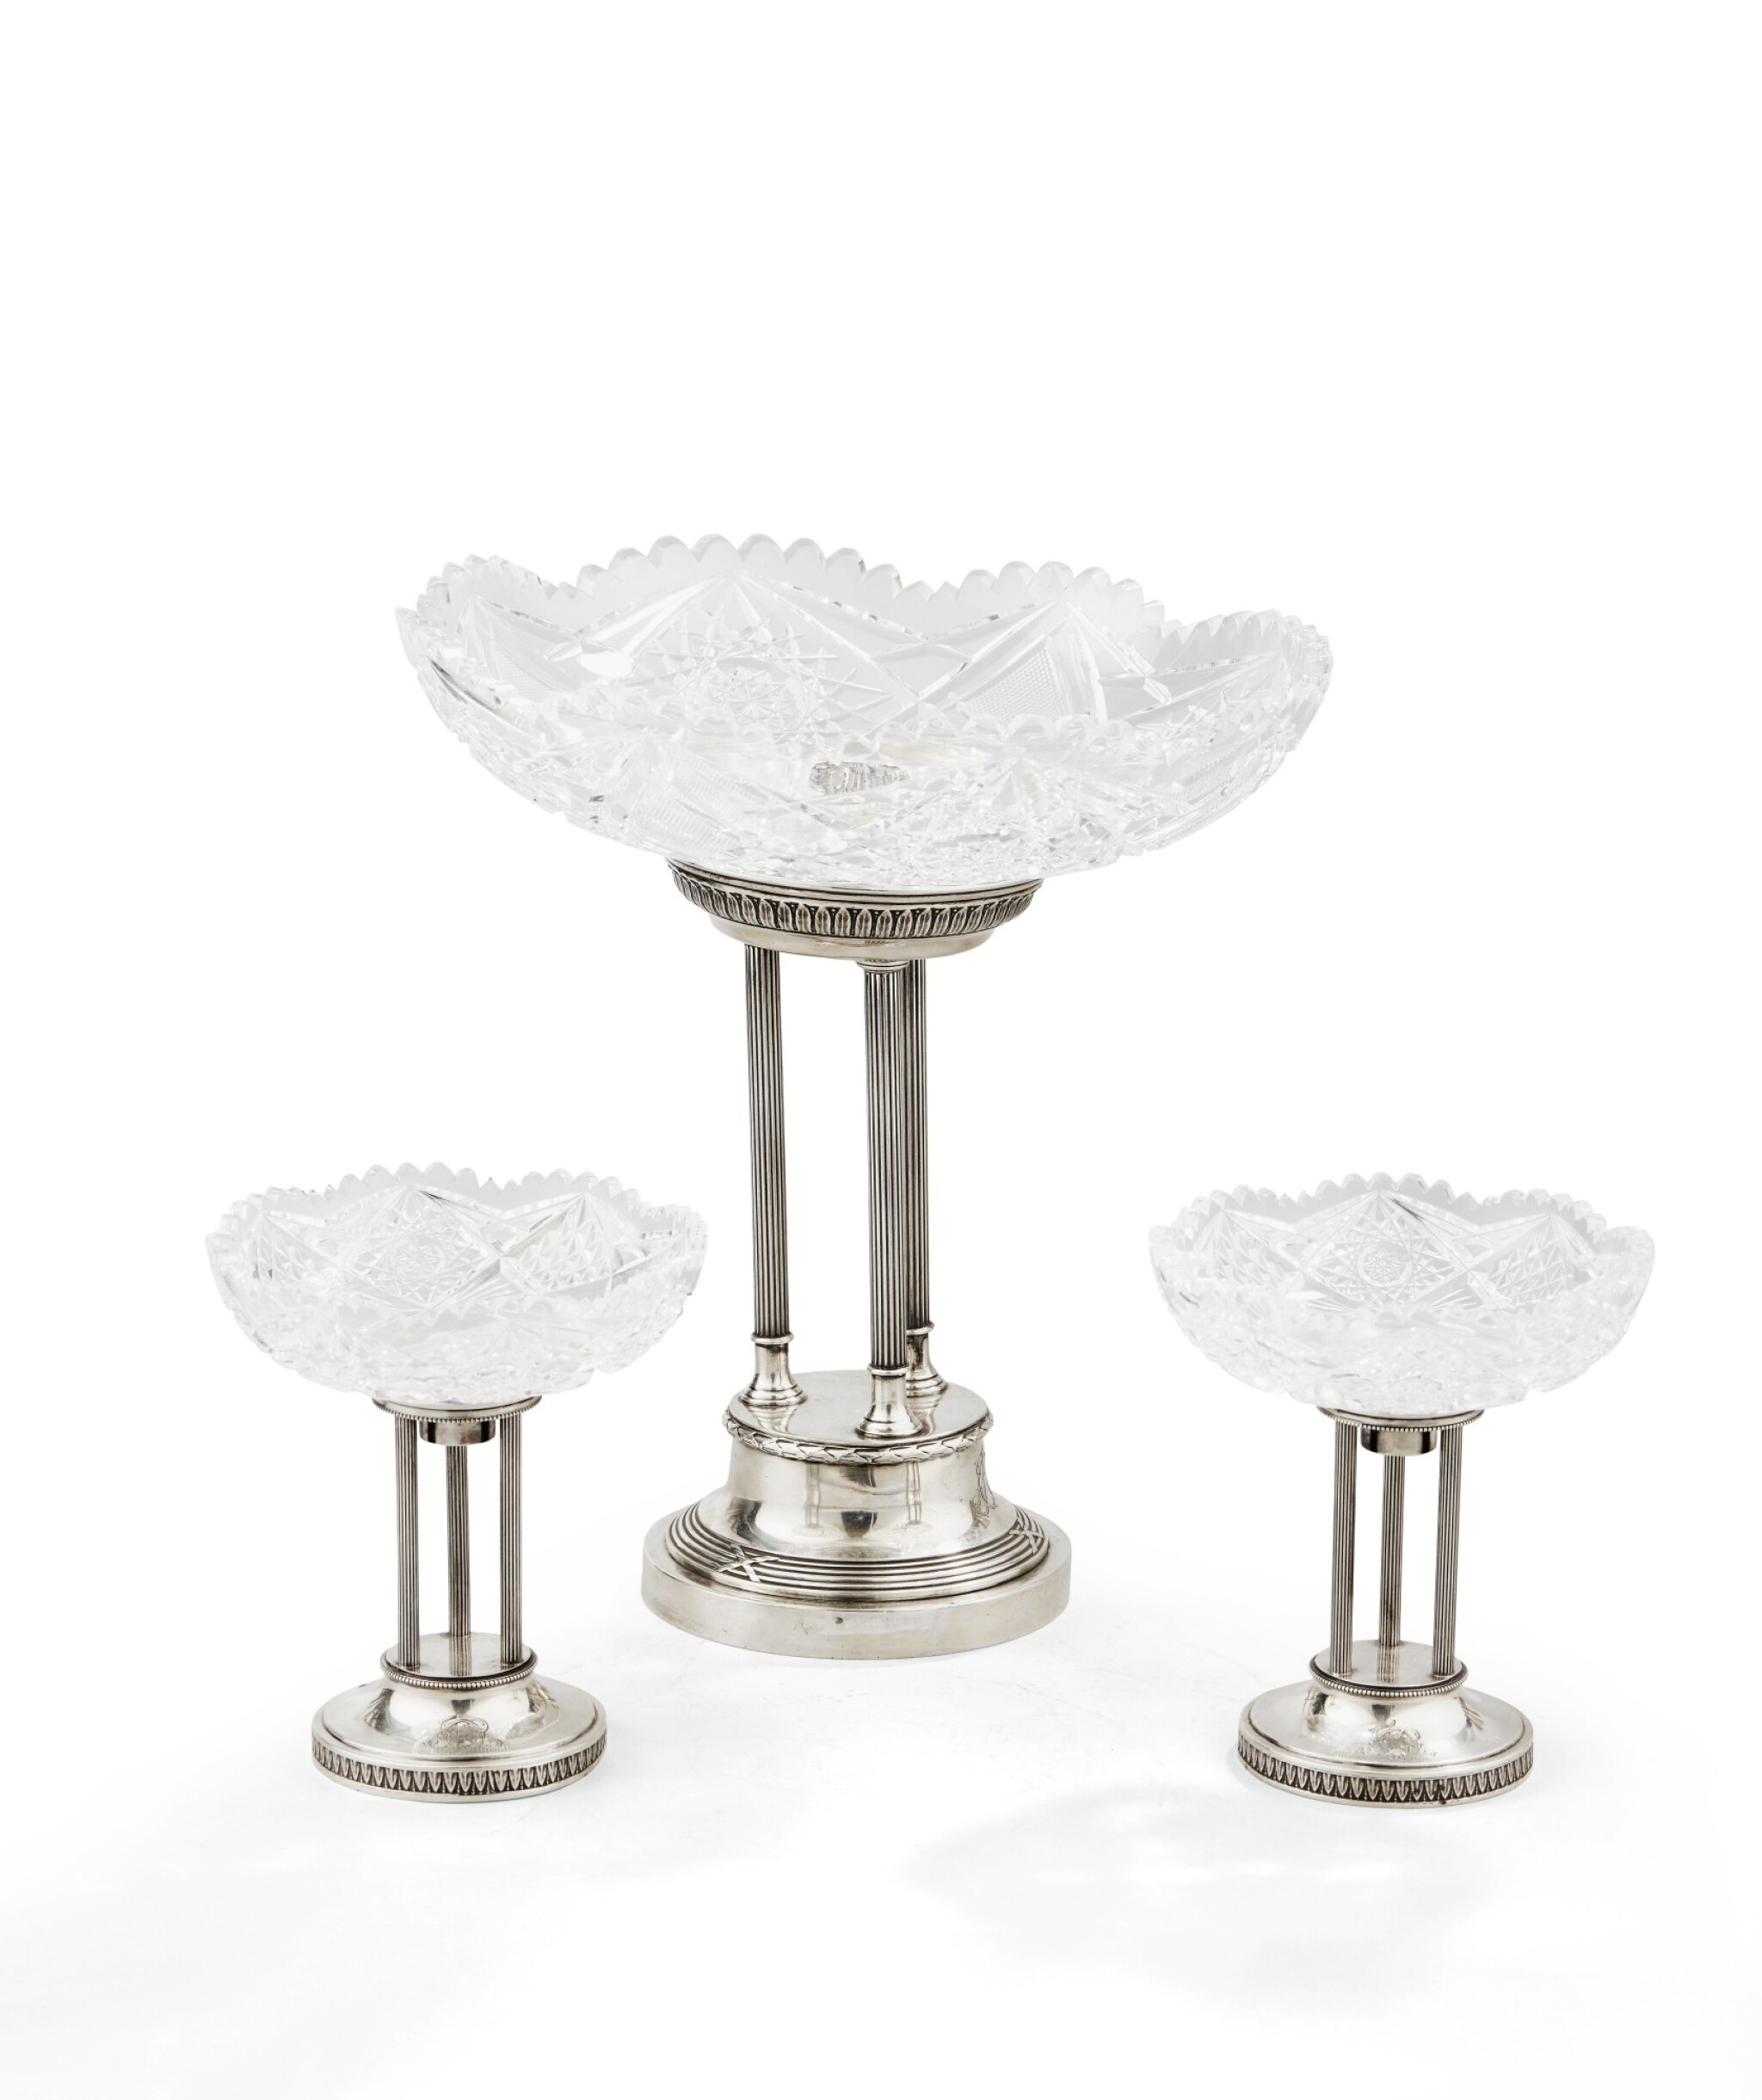 View 1 of Lot 72. A SET OF THREE SILVER AND CUT-CRYSTAL CENTERPIECES, RUSSIA, 1908-1917 |  CENTRES DE TABLE EN ARGENT ET CRISTAL, RUSSIE, 1908-1917 .